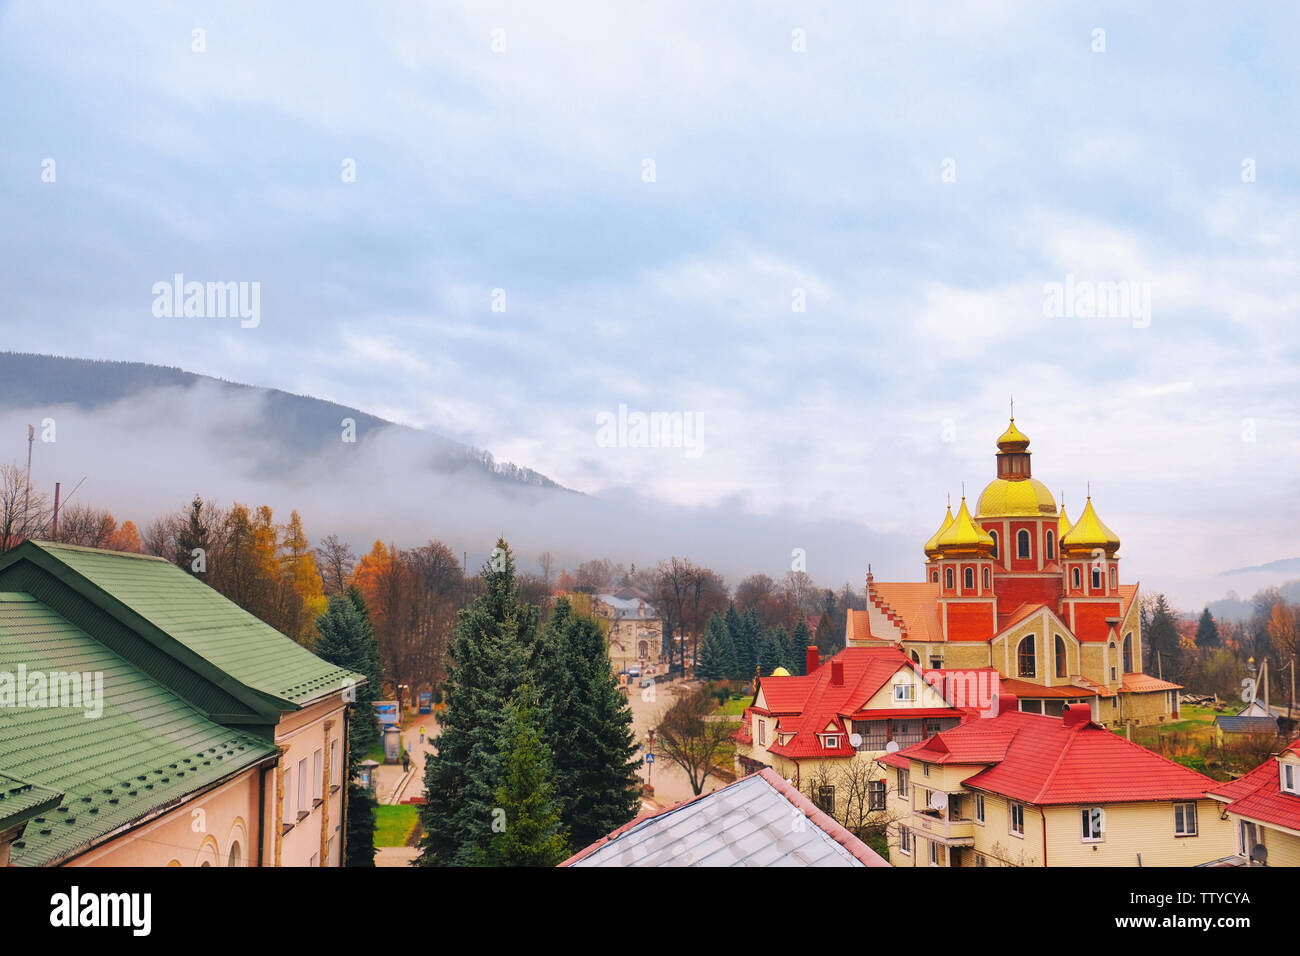 Beautiful resort with church in mountains - Stock Image